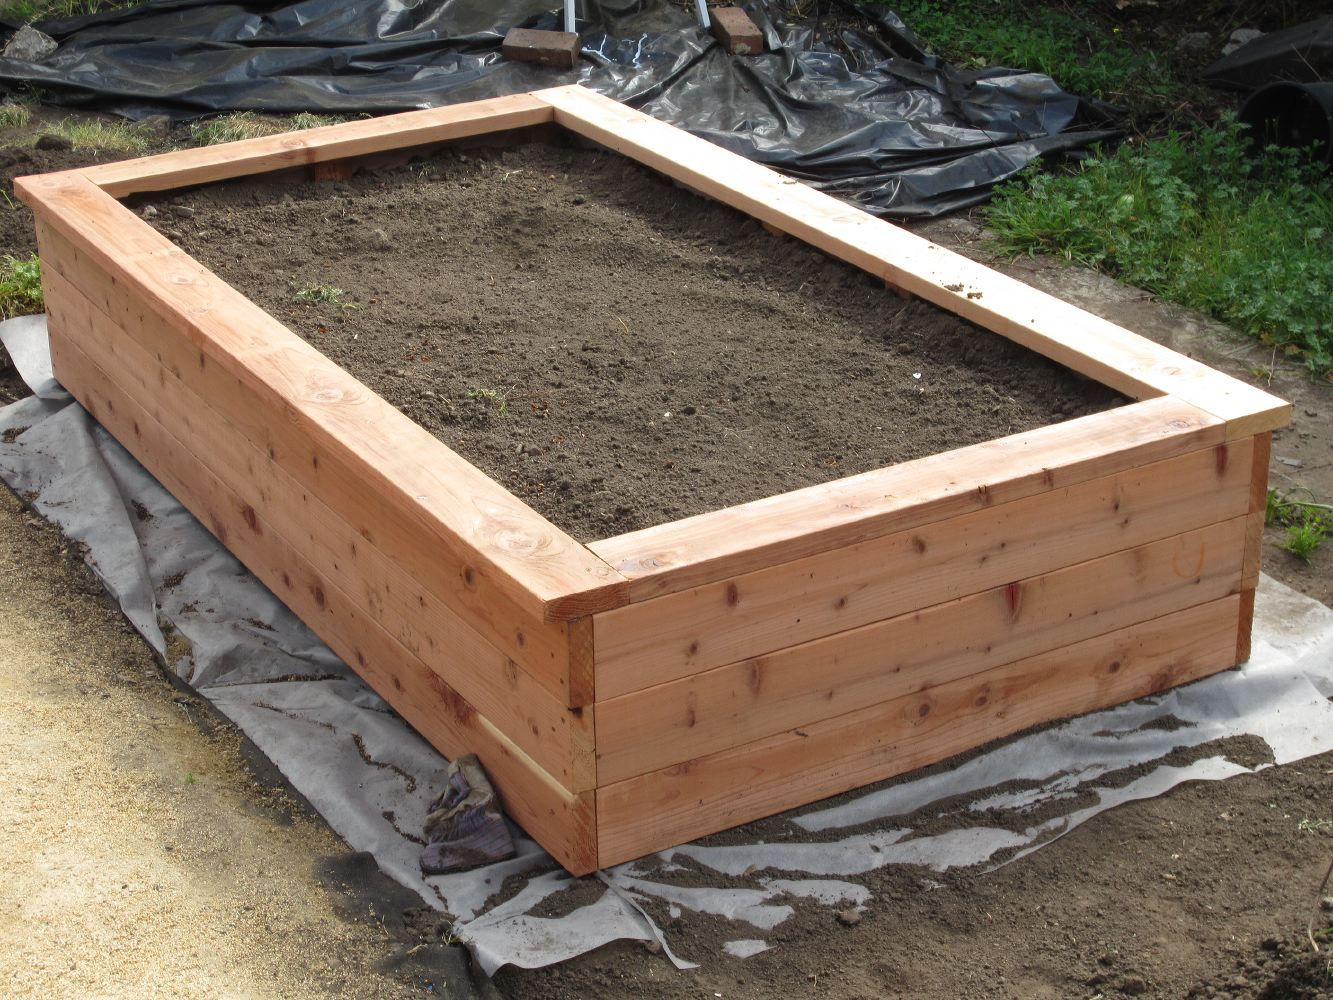 building a planter box and planting fruits and veggies | garden